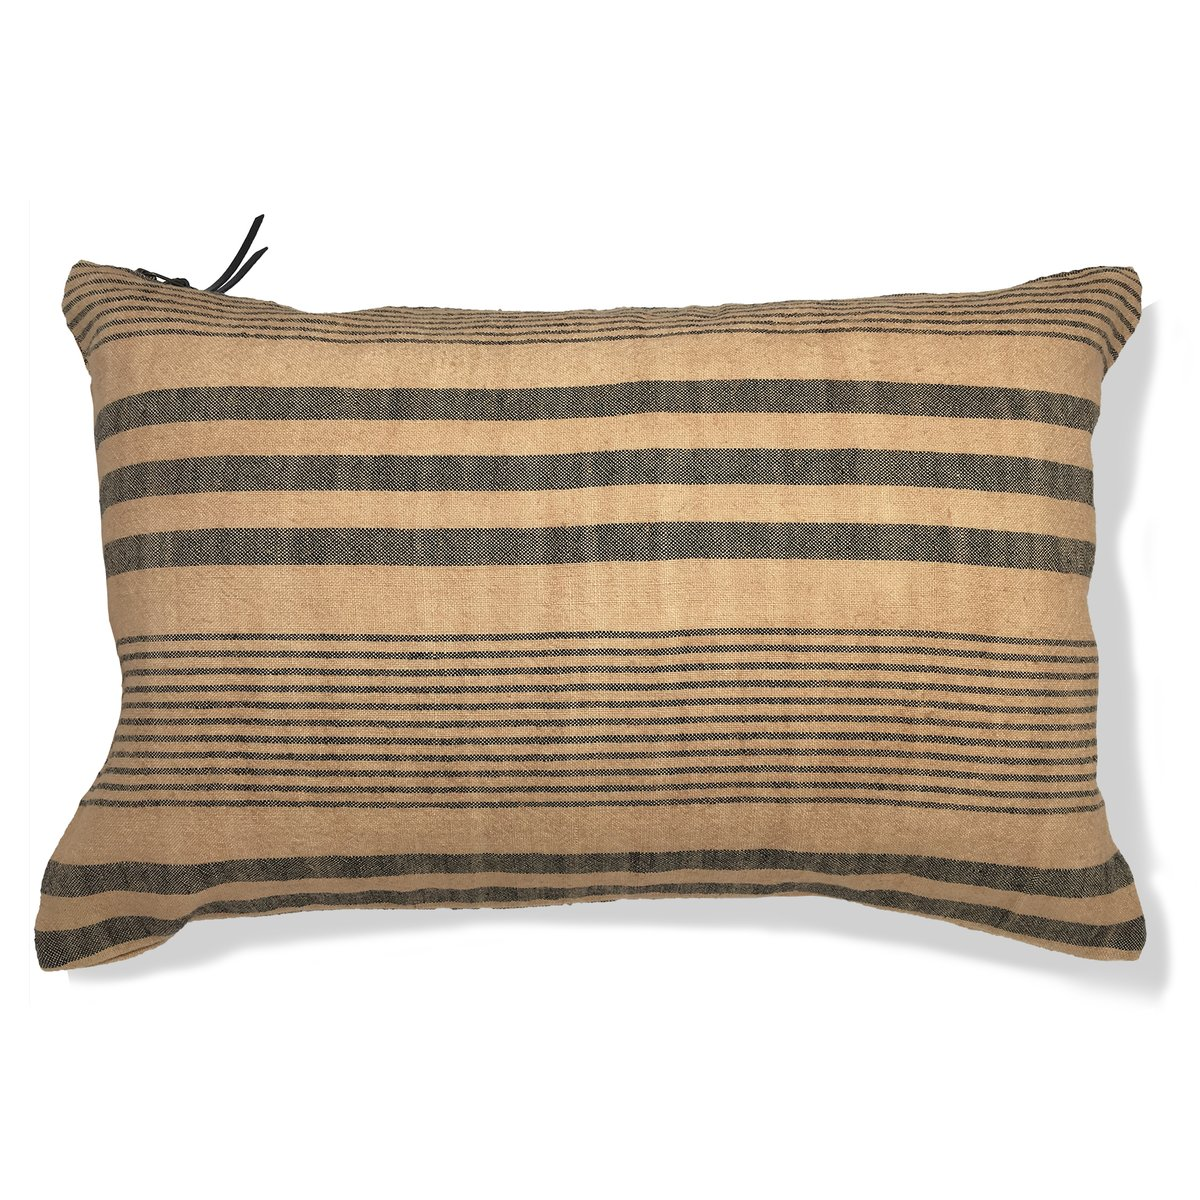 CALIFORNIA 1960  Coussin en lin pur lavé  Stripes chameau 30x50 (photo)